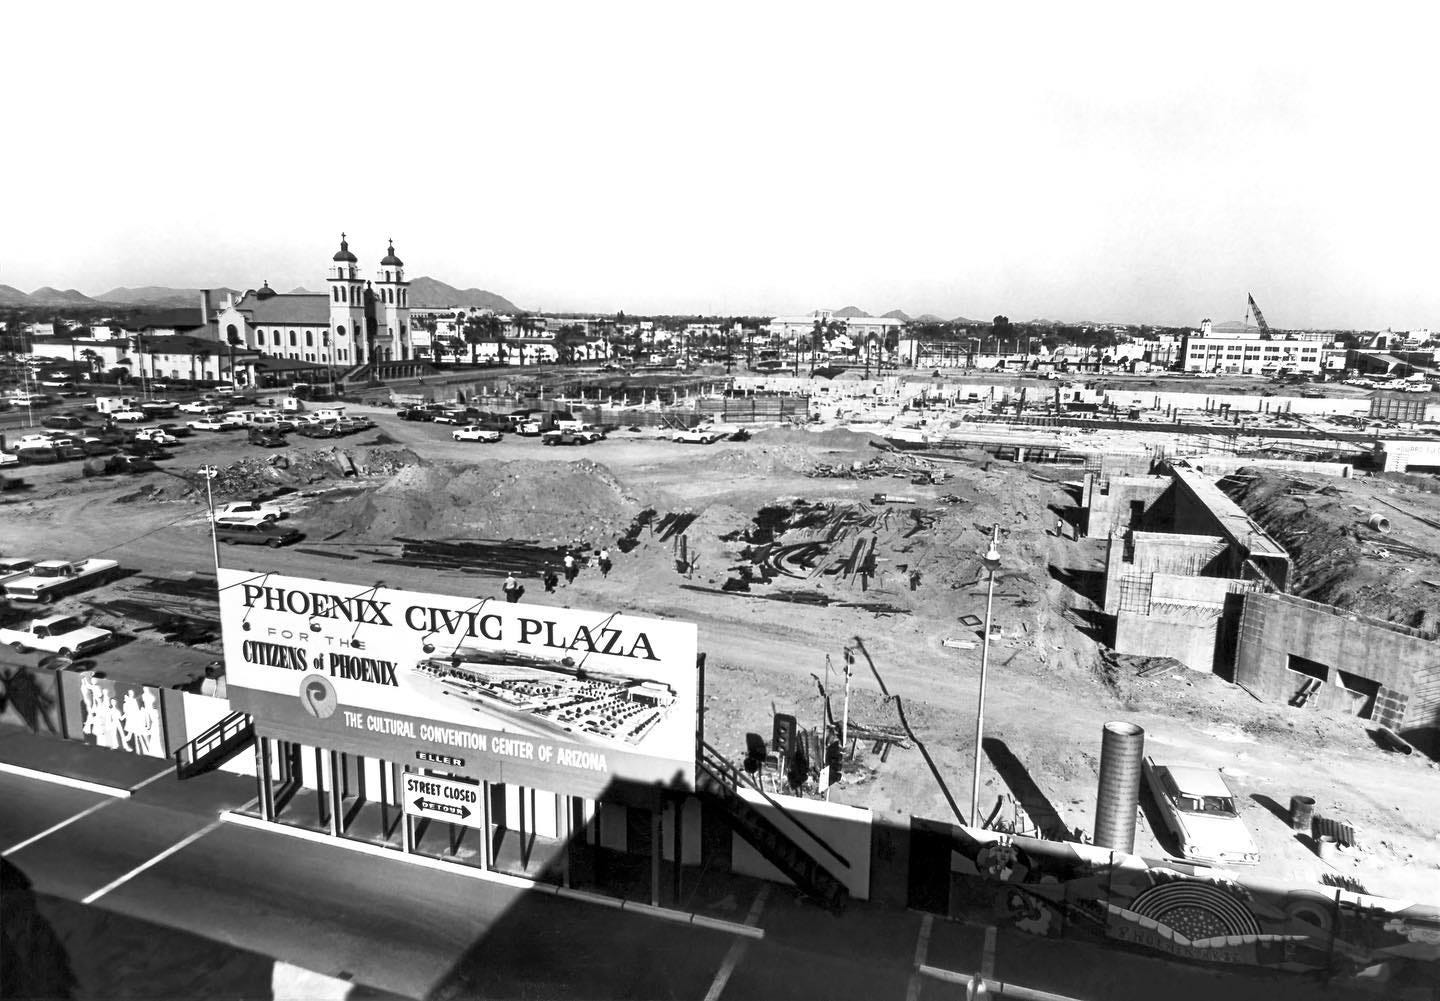 How a 'disastrous' concert spurred Phoenix to add a convention center in the 1960s